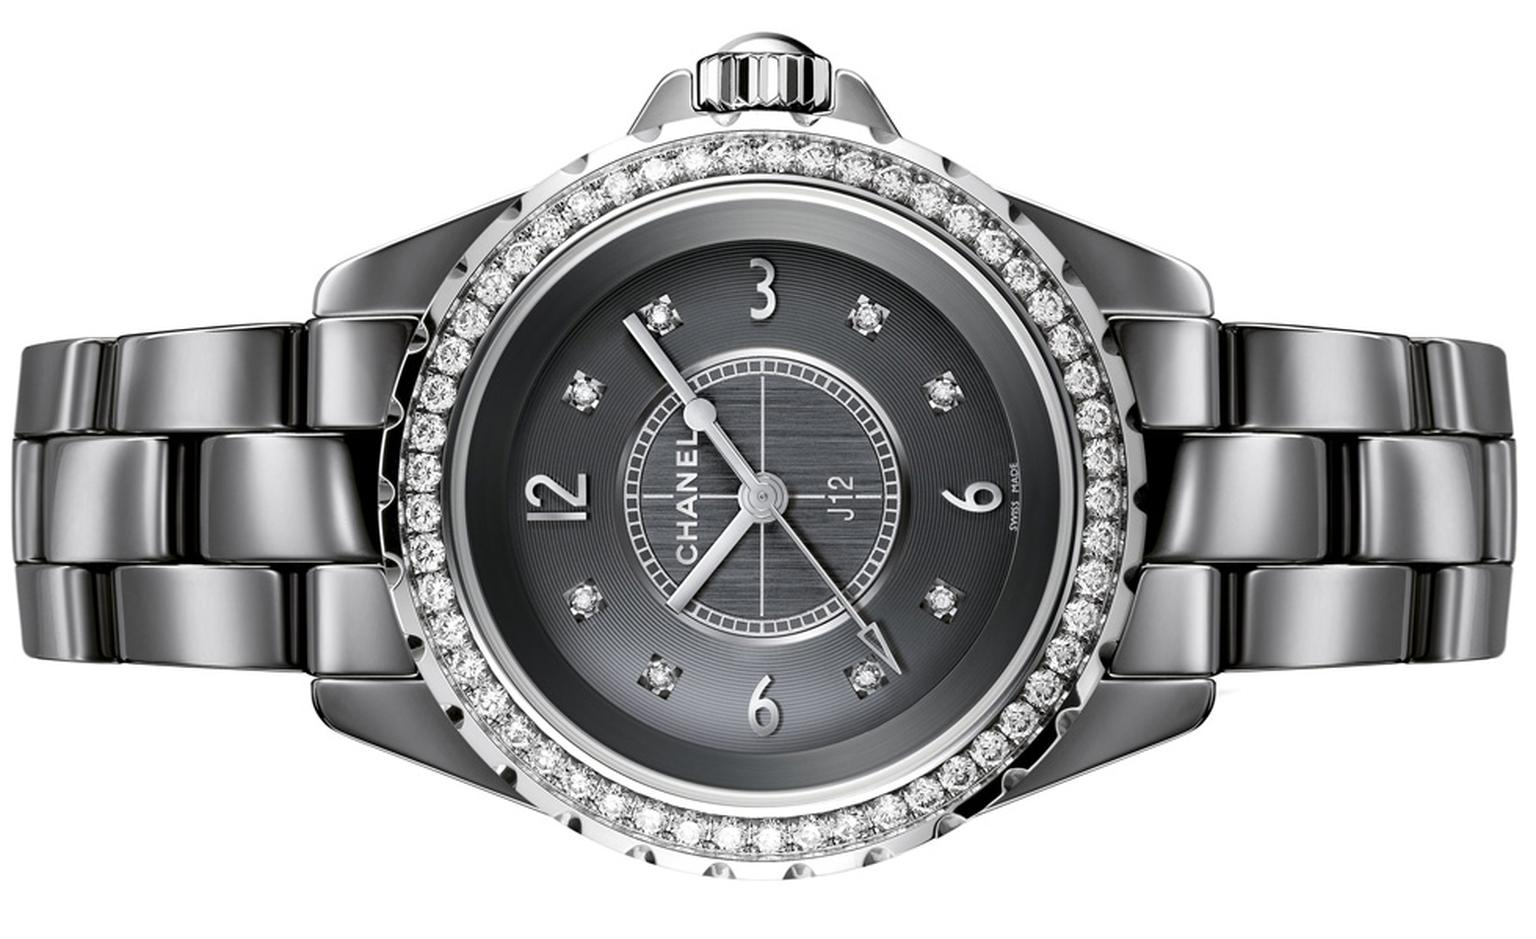 Chanel J12 Chromatic watch in titanium ceramic. 53 diamonds. Dial set with 8 diamond indicators. High-precision quartz movement. Functions: hours, minutes, seconds. Water-resistance : 50 meters.